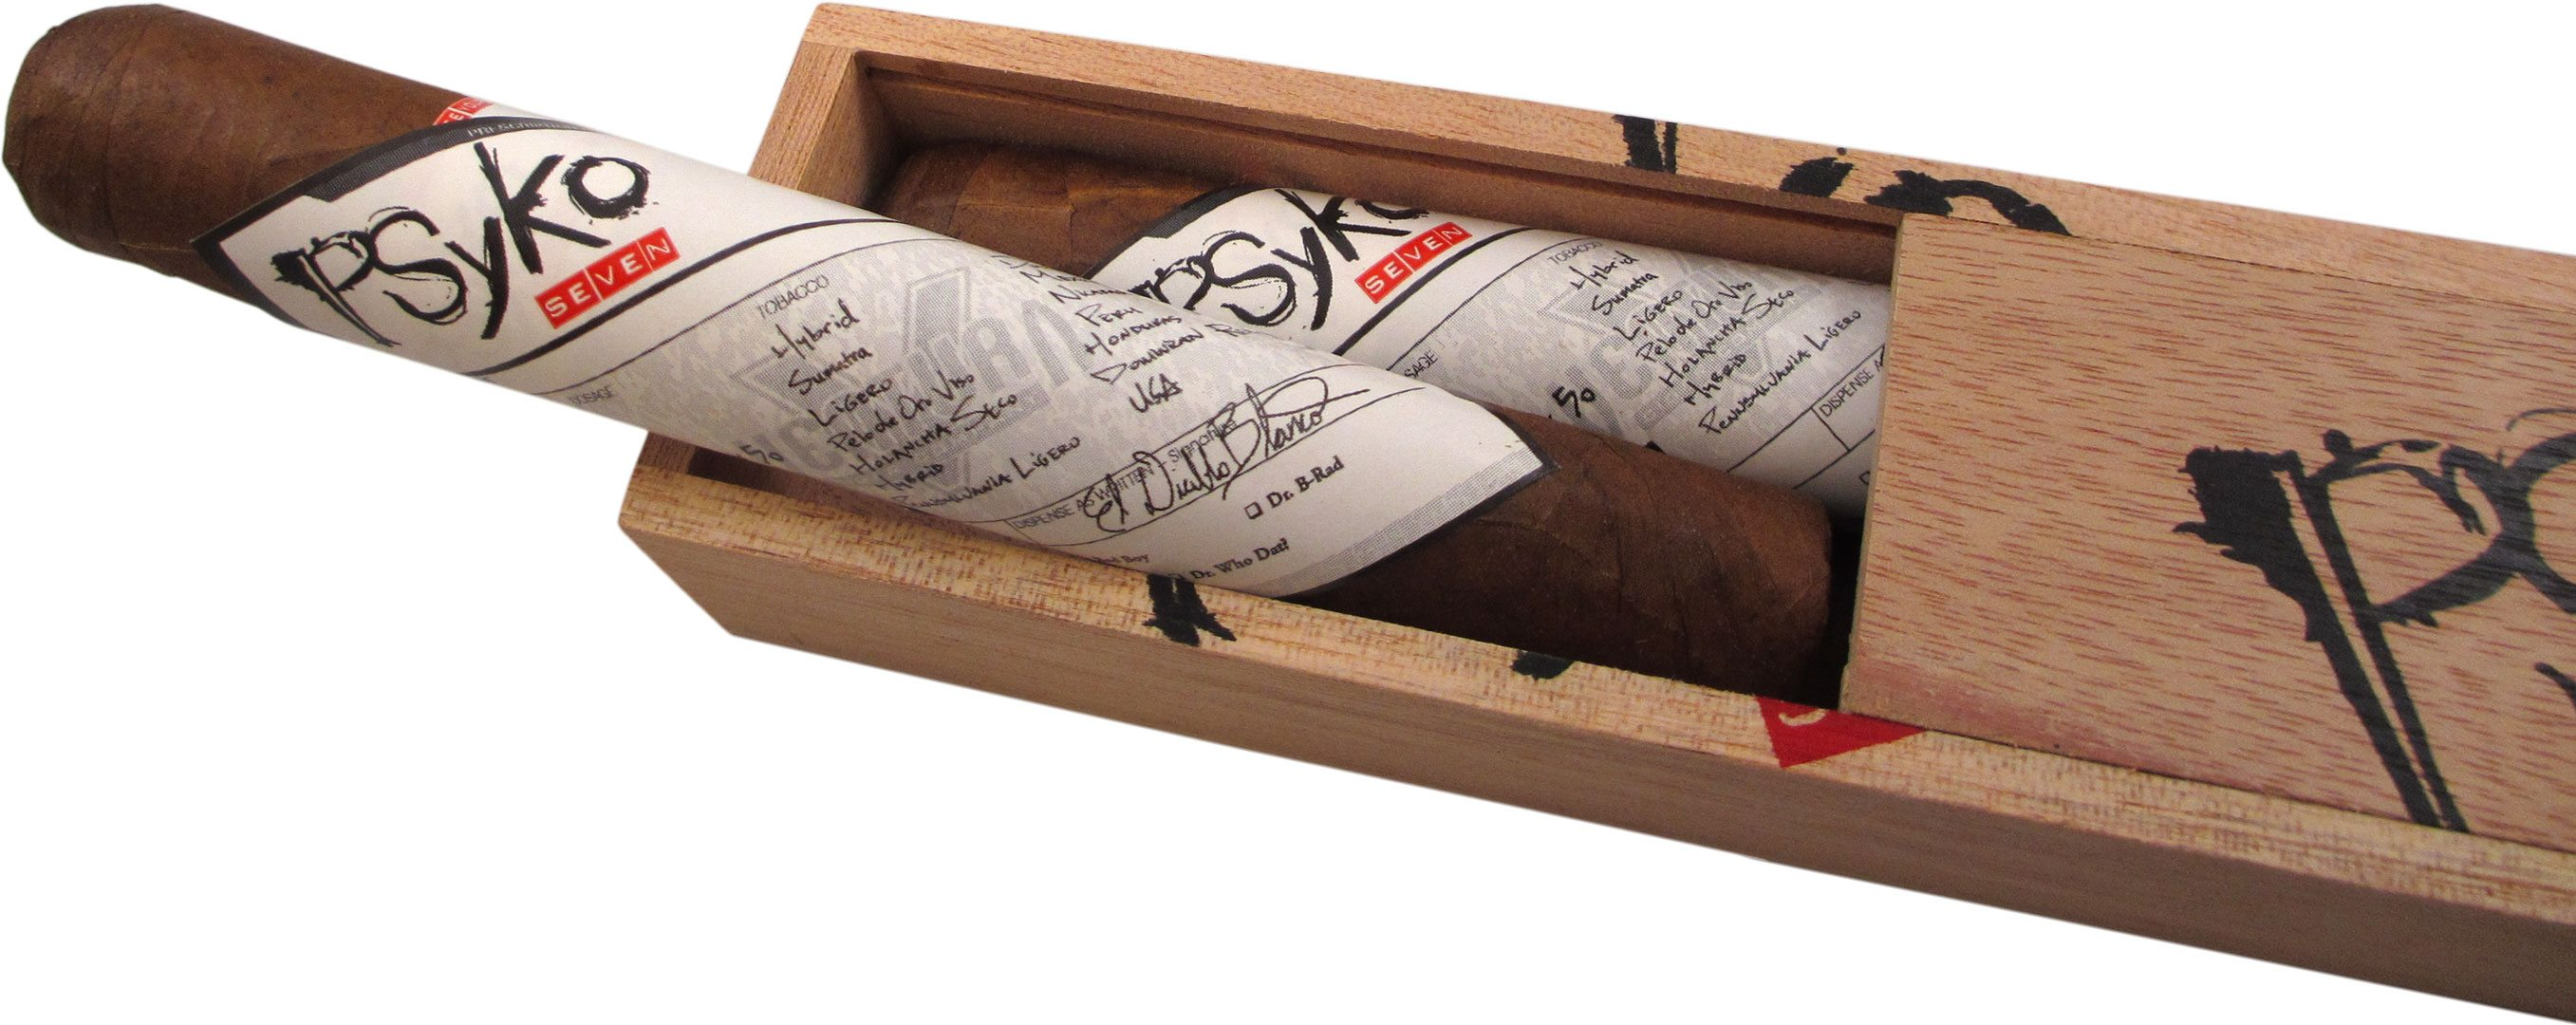 Cigar News: Ventura Cigars PSyKo SEVEN to be Released in Smaller Vitola